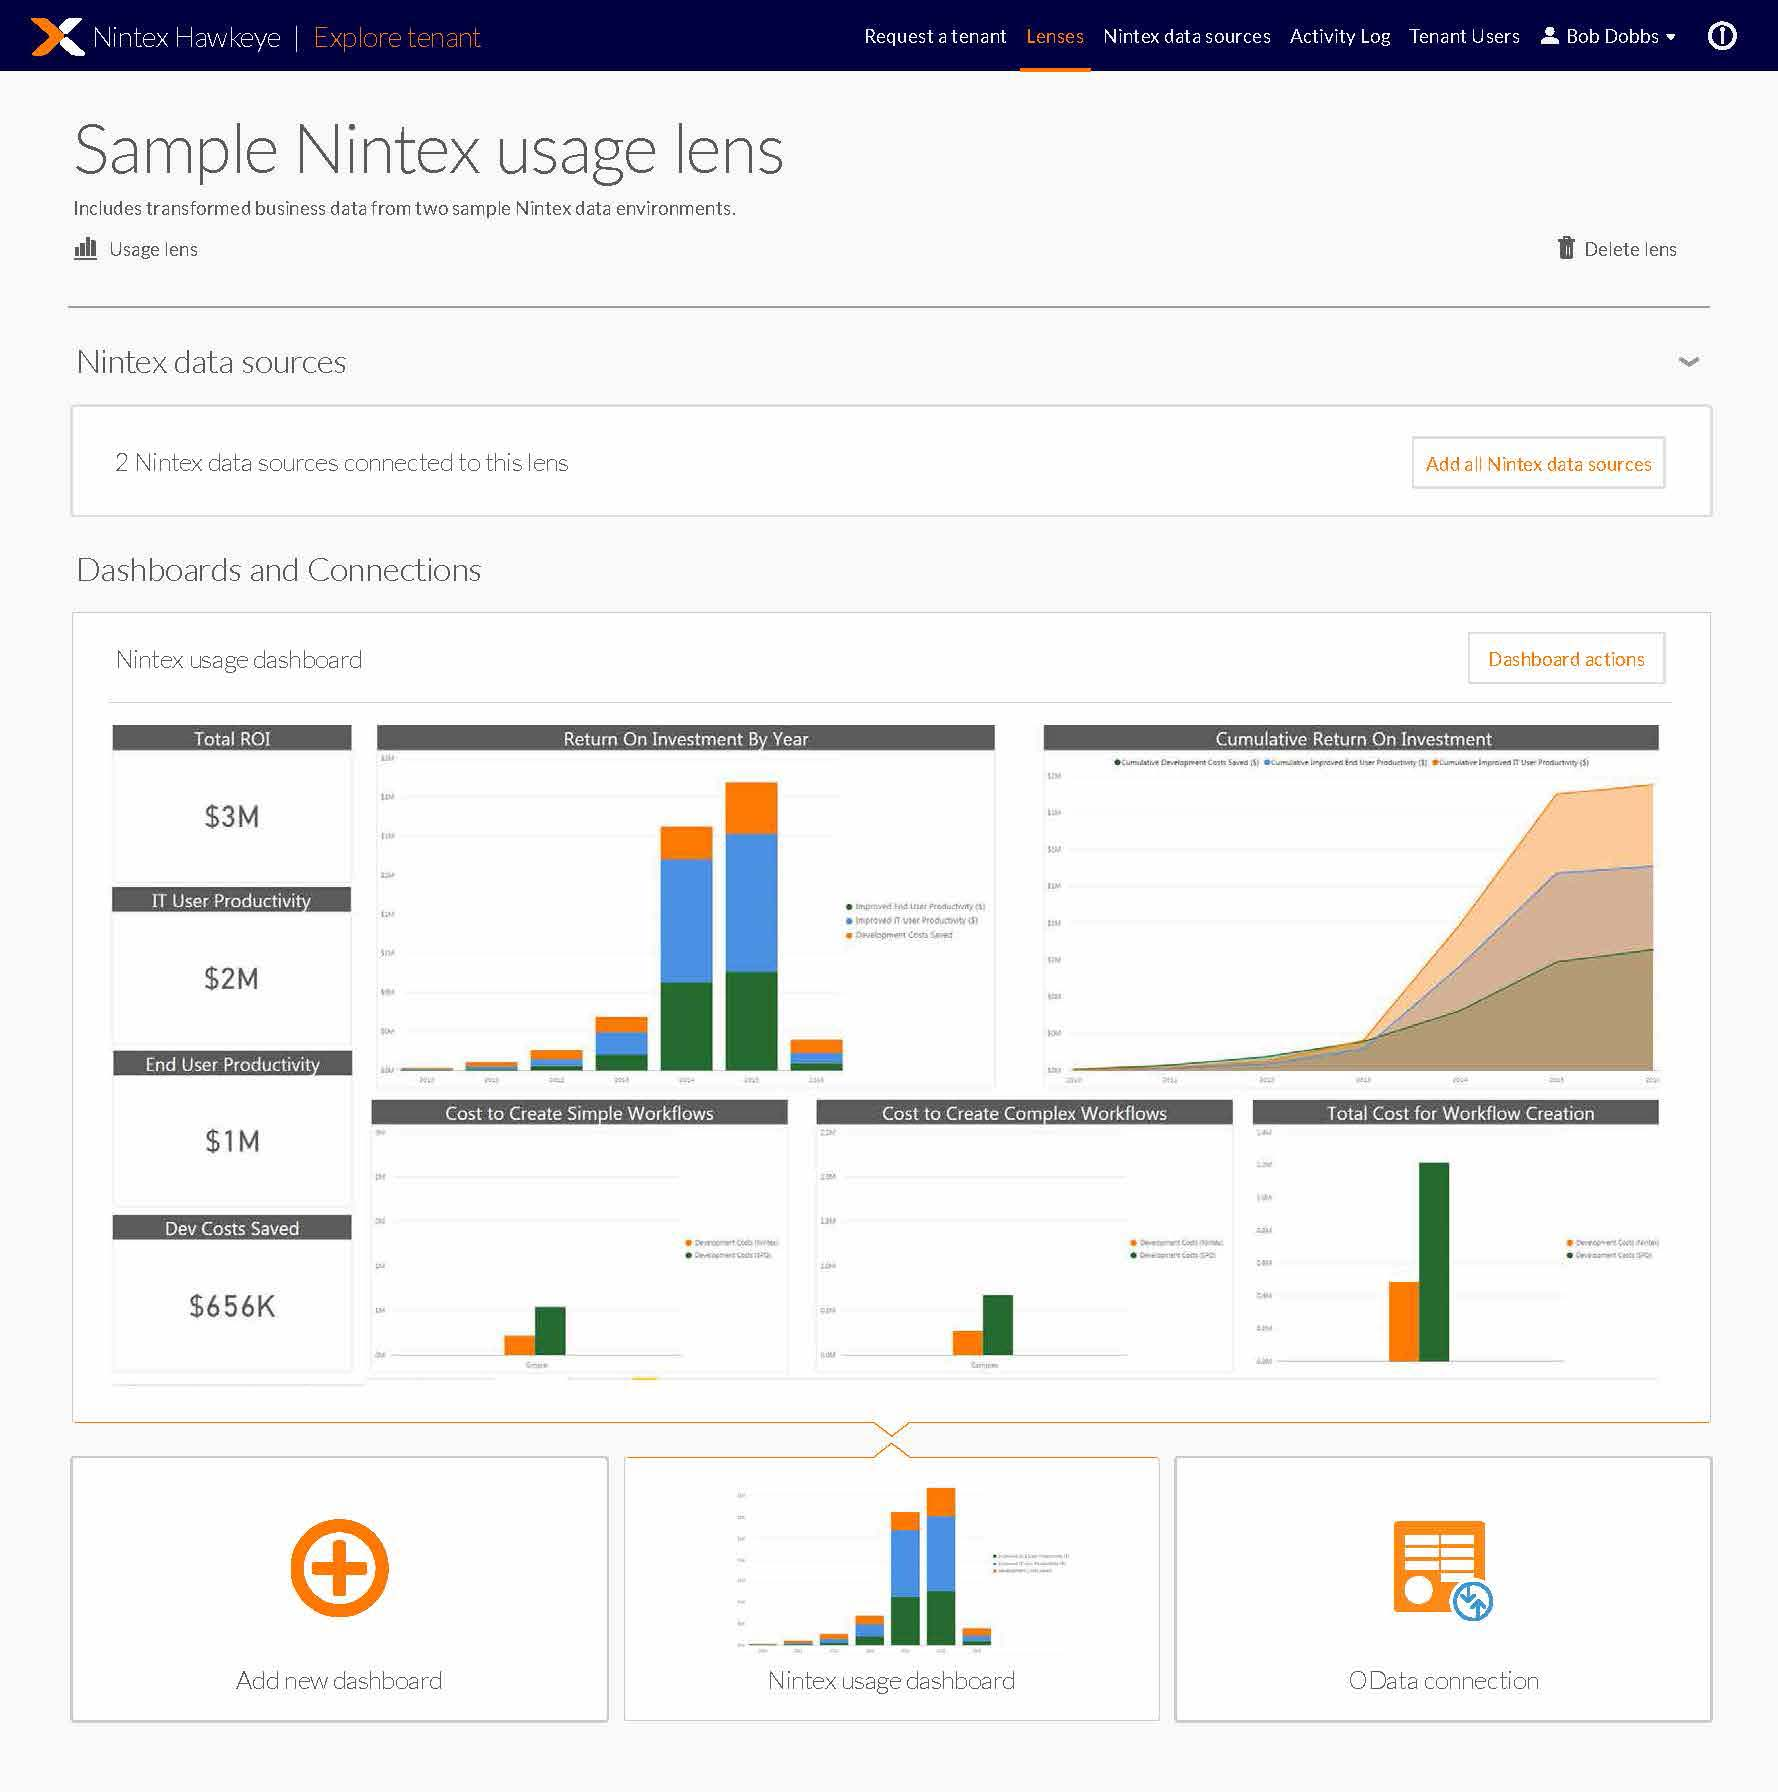 See how the Nintex Hawkeye Process Lens transforms business data from two sample Nintex data environments.